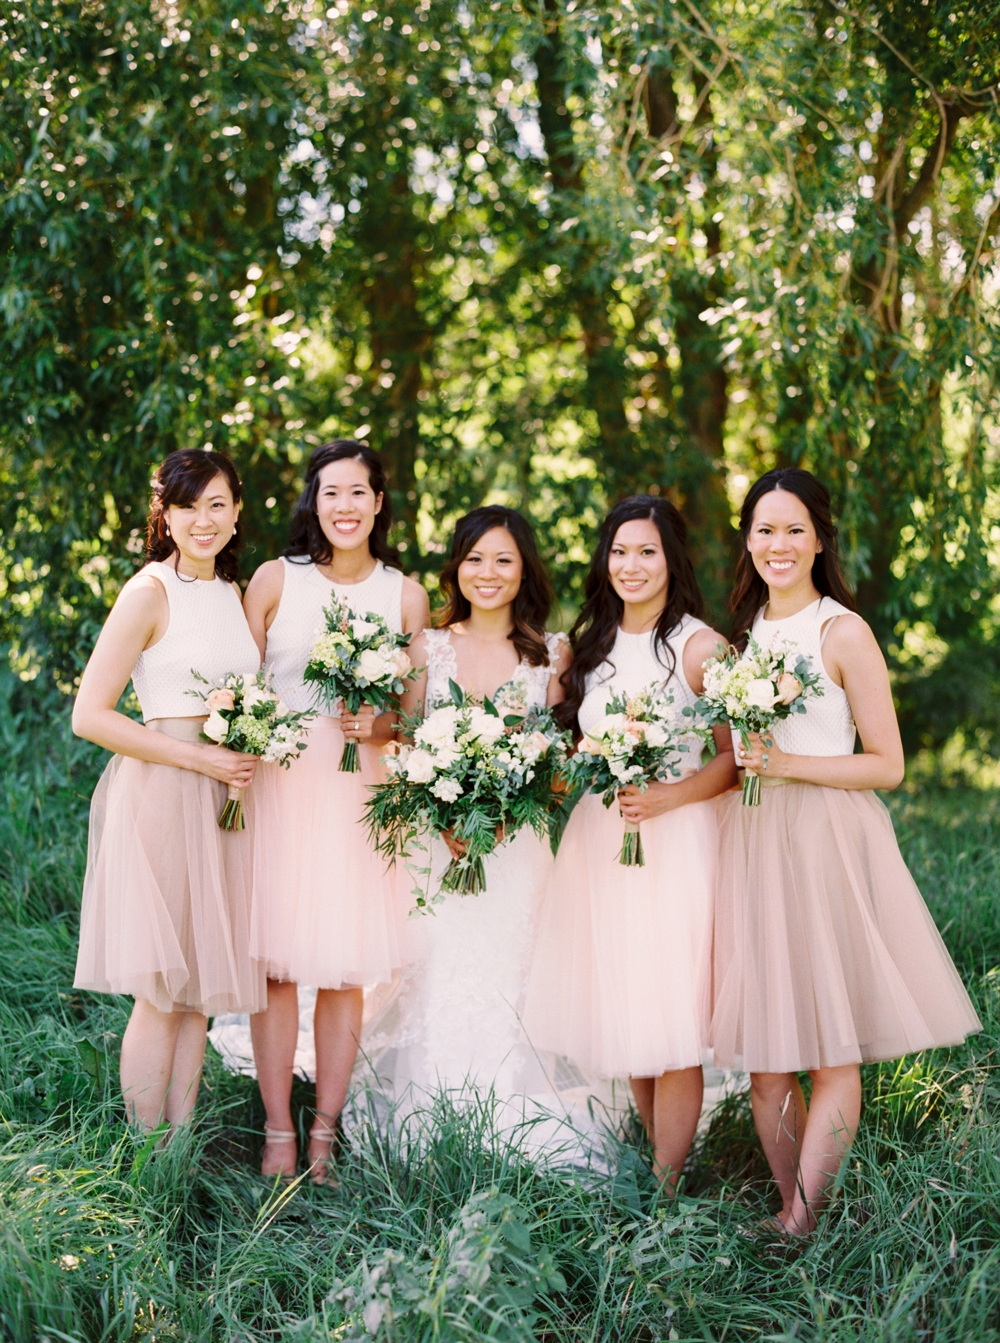 Calgary Wedding Photographer | Meadow Muse Pavilion Wedding | Canmore Photographers | Fish Creek Park | Bridesmaids crop top & skirt